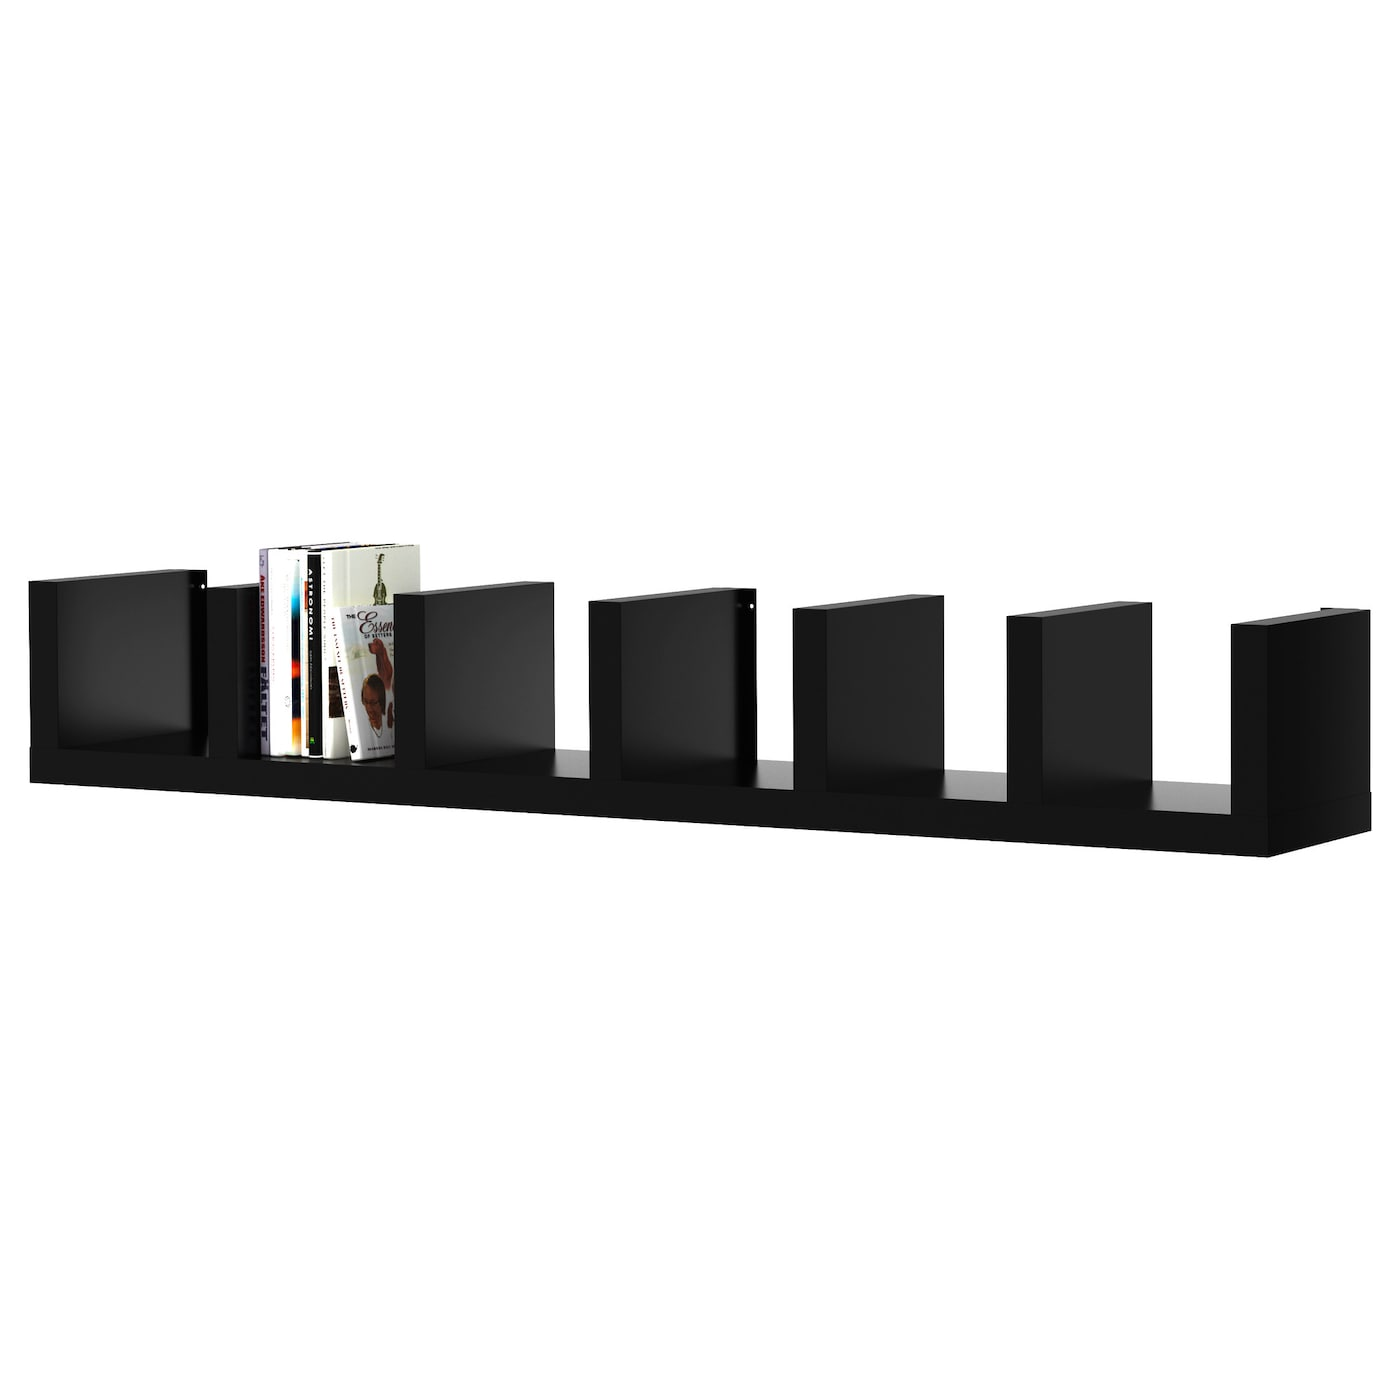 lack wall shelf unit black 30x190 cm ikea. Black Bedroom Furniture Sets. Home Design Ideas